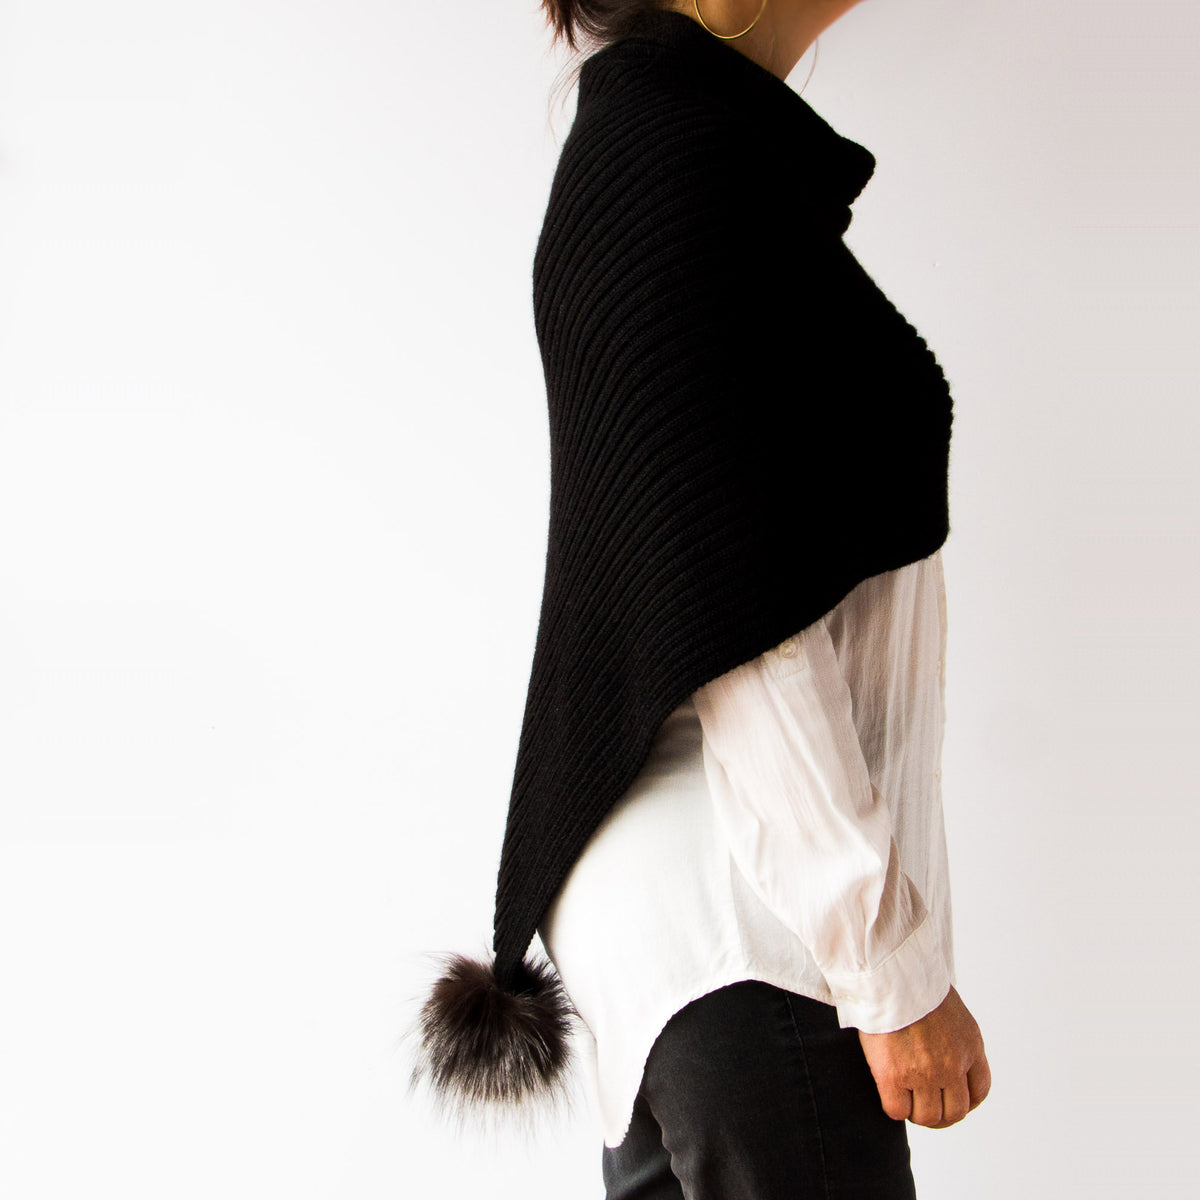 Woman Wearing a Black Handmade 100% Baby Alpaca Wool Shawl / Poncho Style - Sold by Chic & Basta